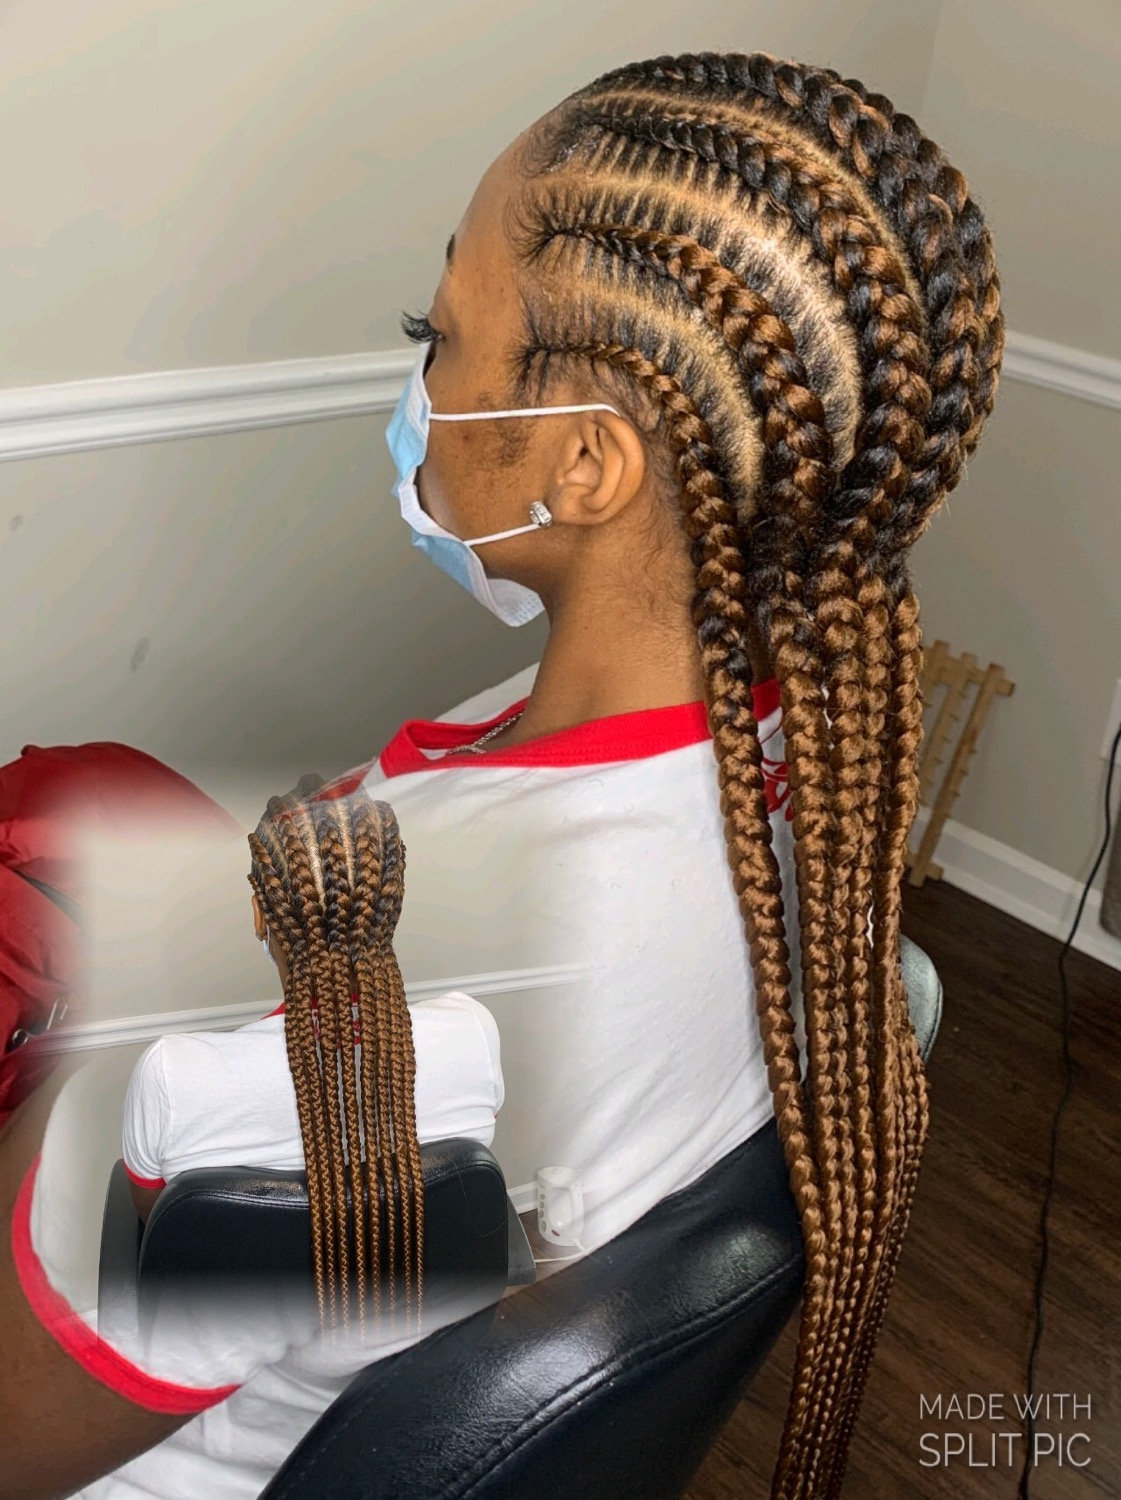 4 to 6 Regular Size Feed -In Braid